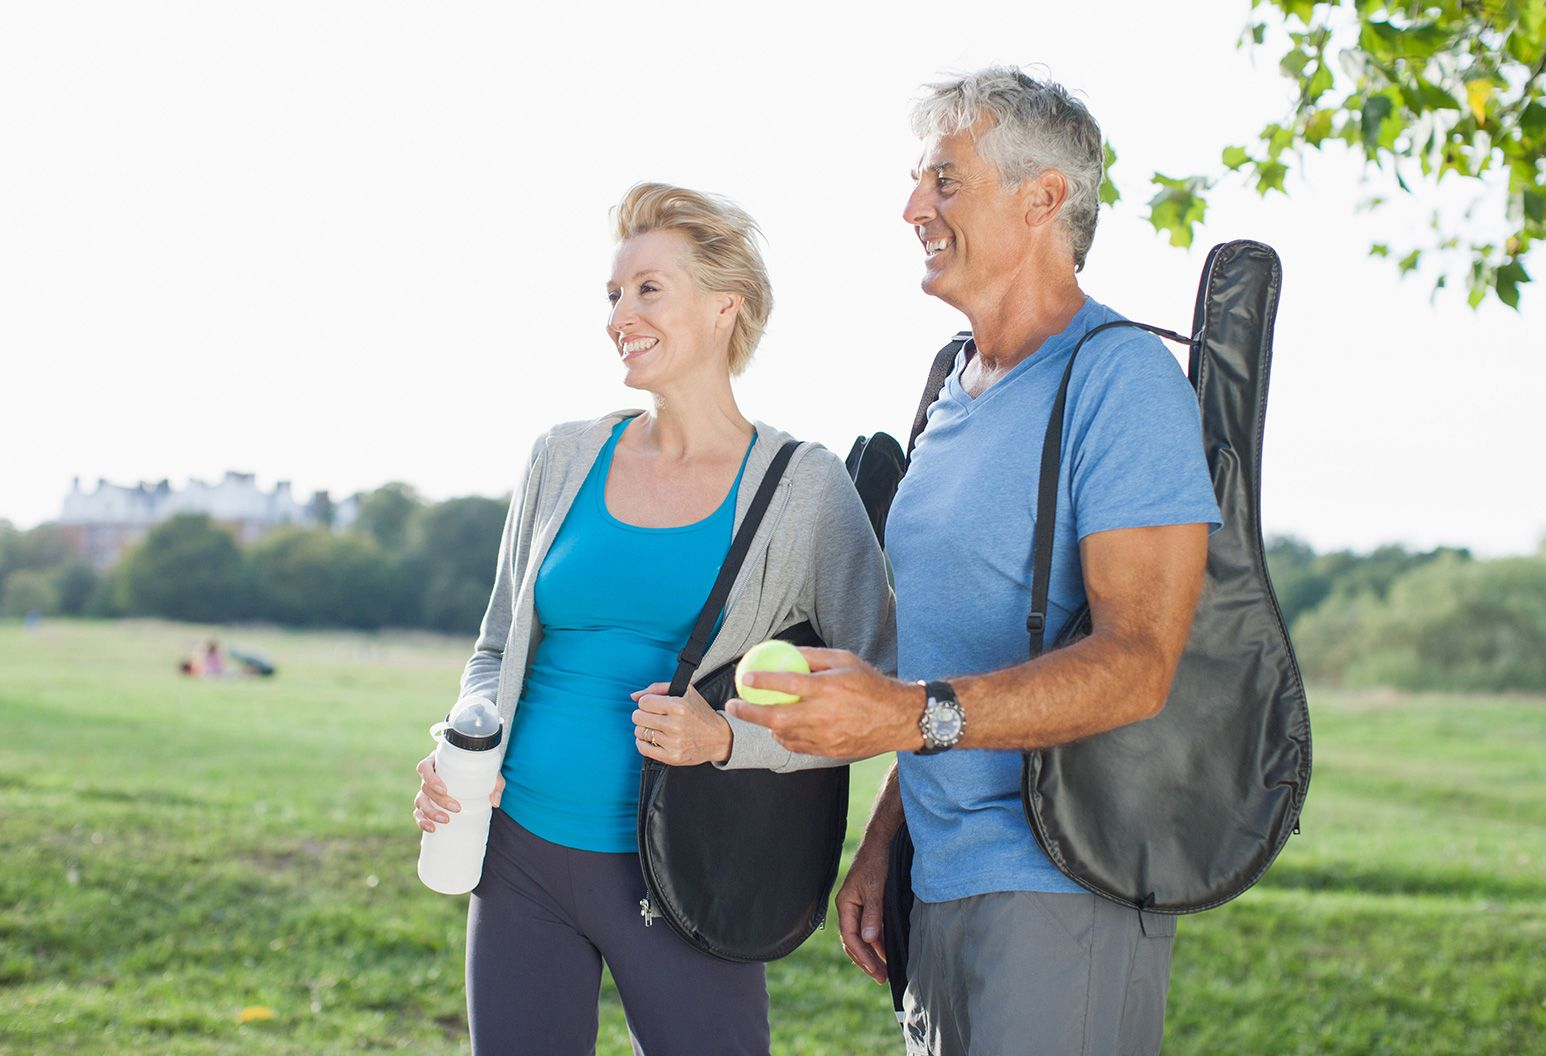 Middle-aged couple, smiling, standing in a park holding tennis racquet bags on their shoulders